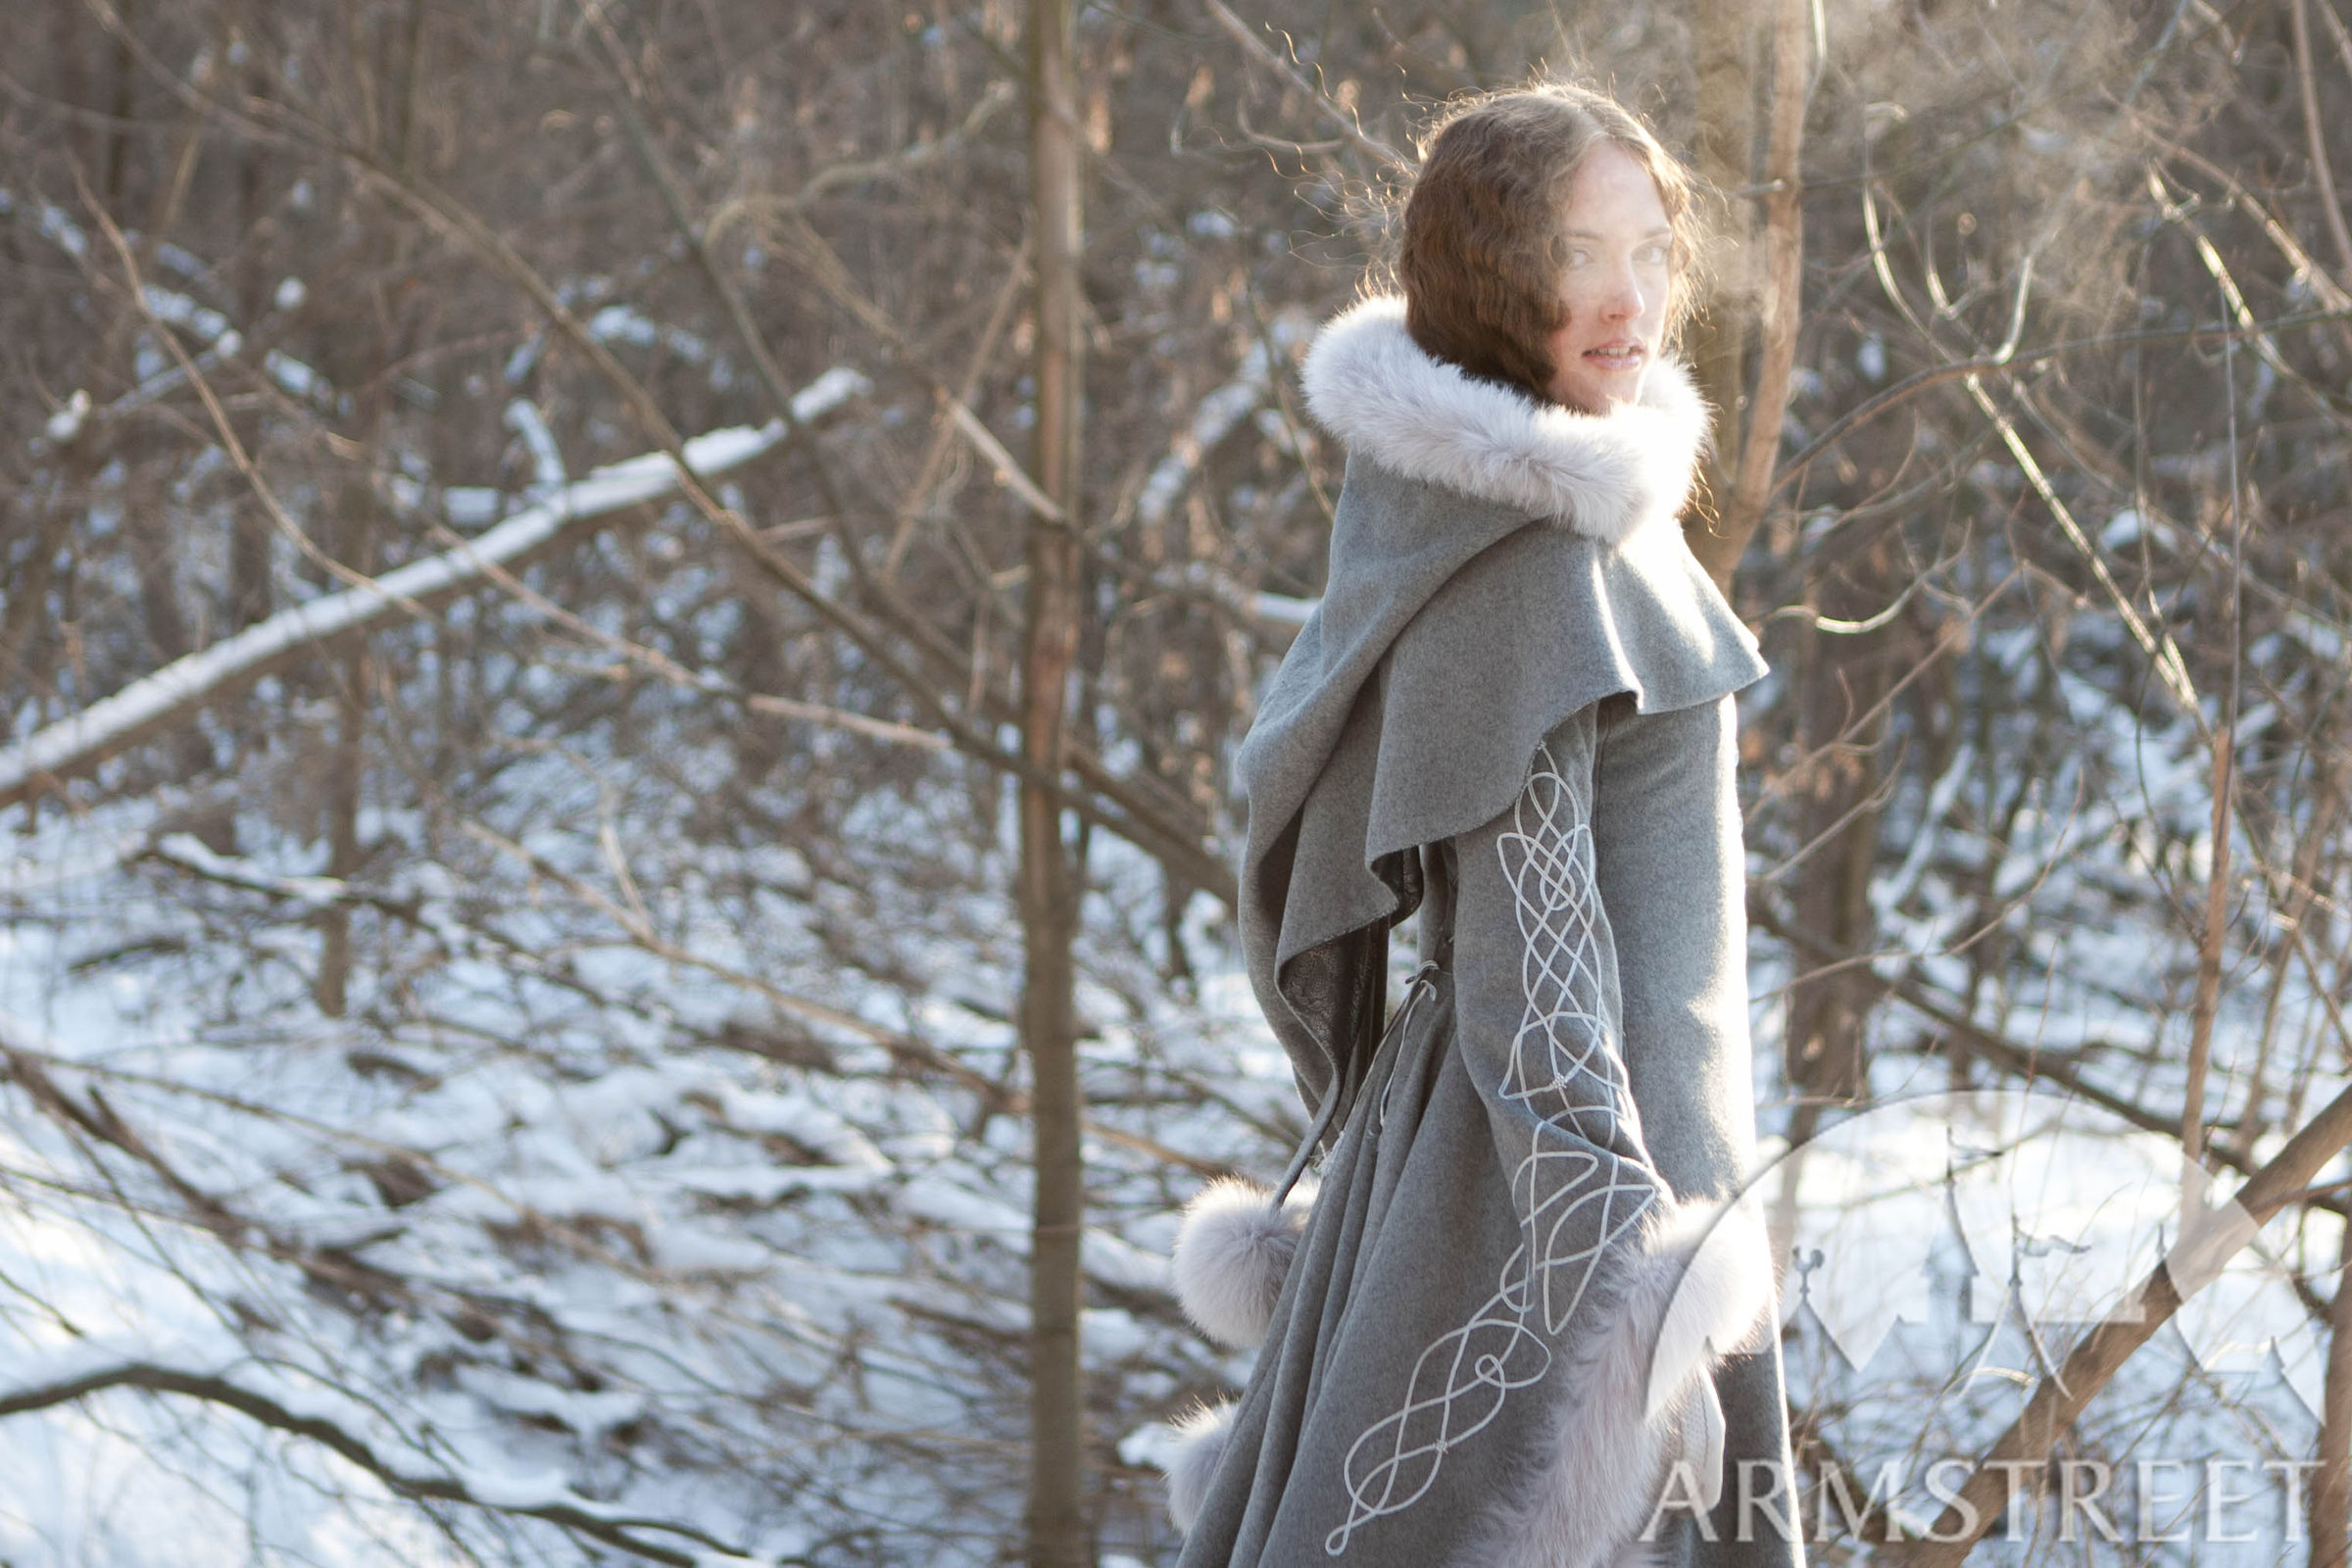 Exclusive fantasy fashion design coat Heretrix of the Winter for sale Available in ivory wool